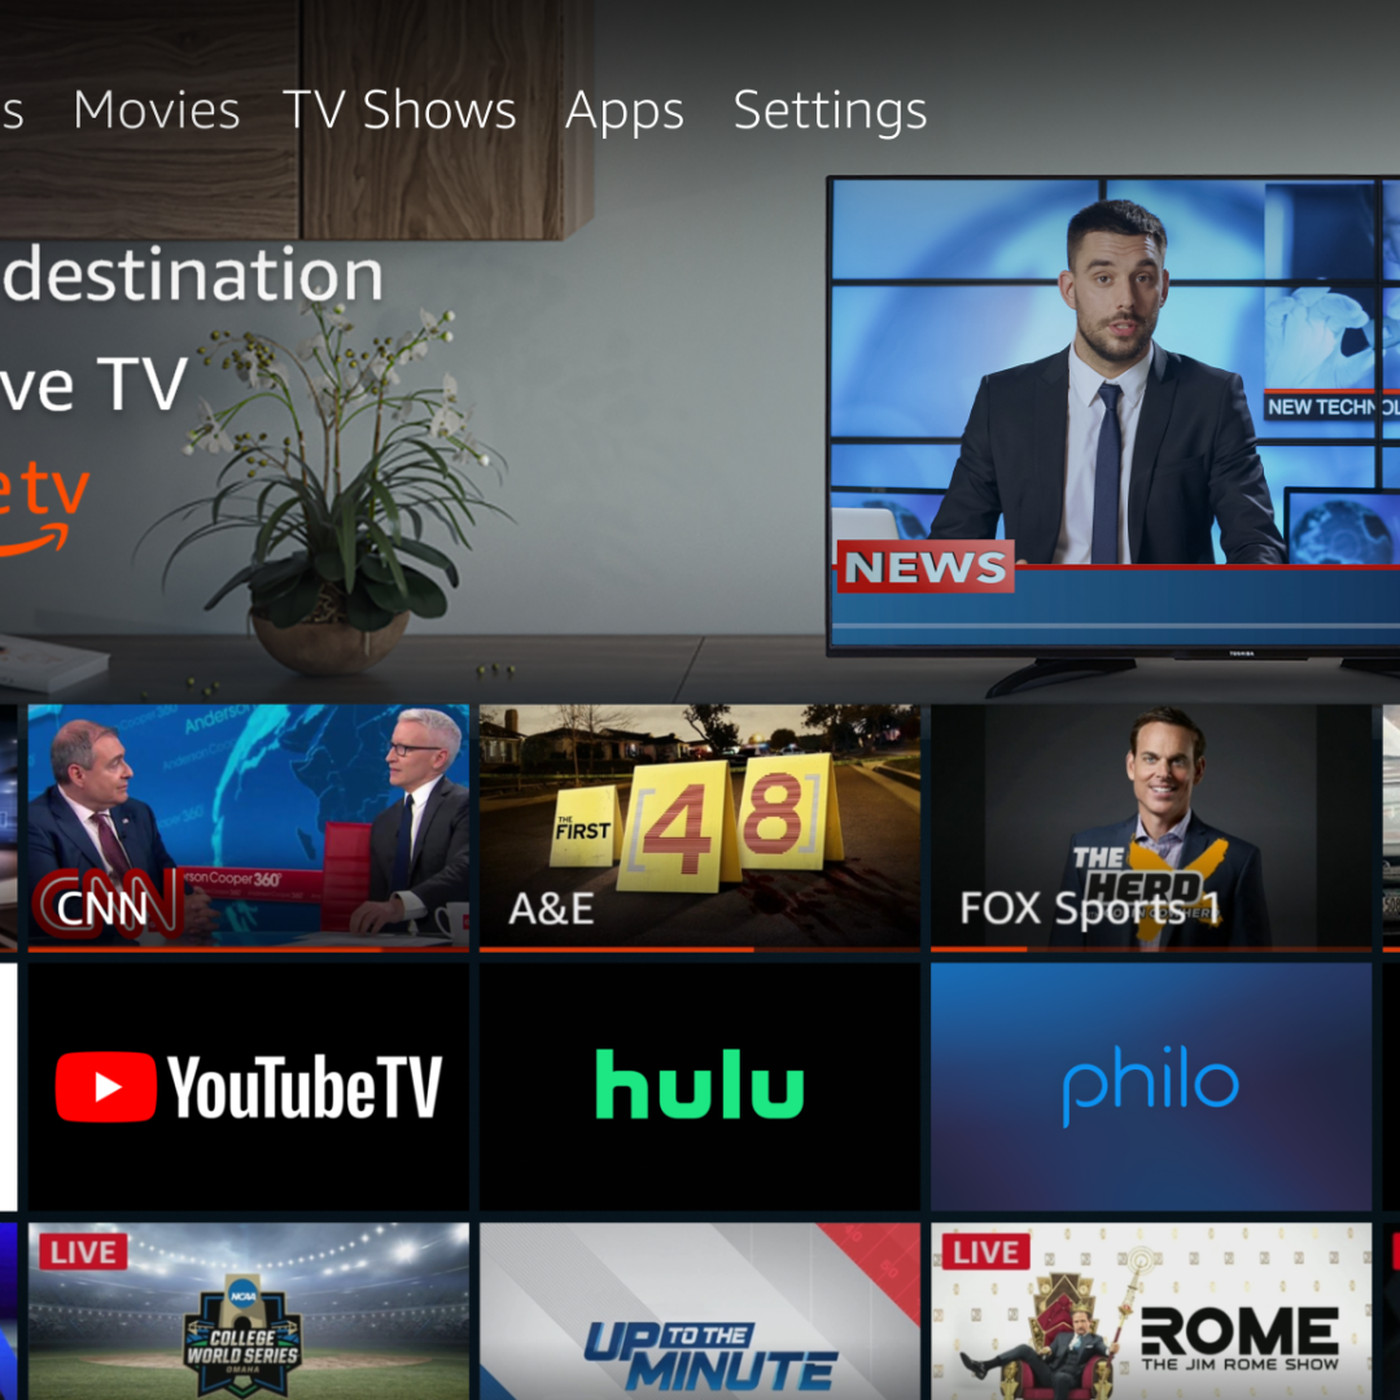 theverge.com - Julia Alexander - Amazon Fire TV Live adds virtual pay TV options from Sling, YouTube, and Hulu